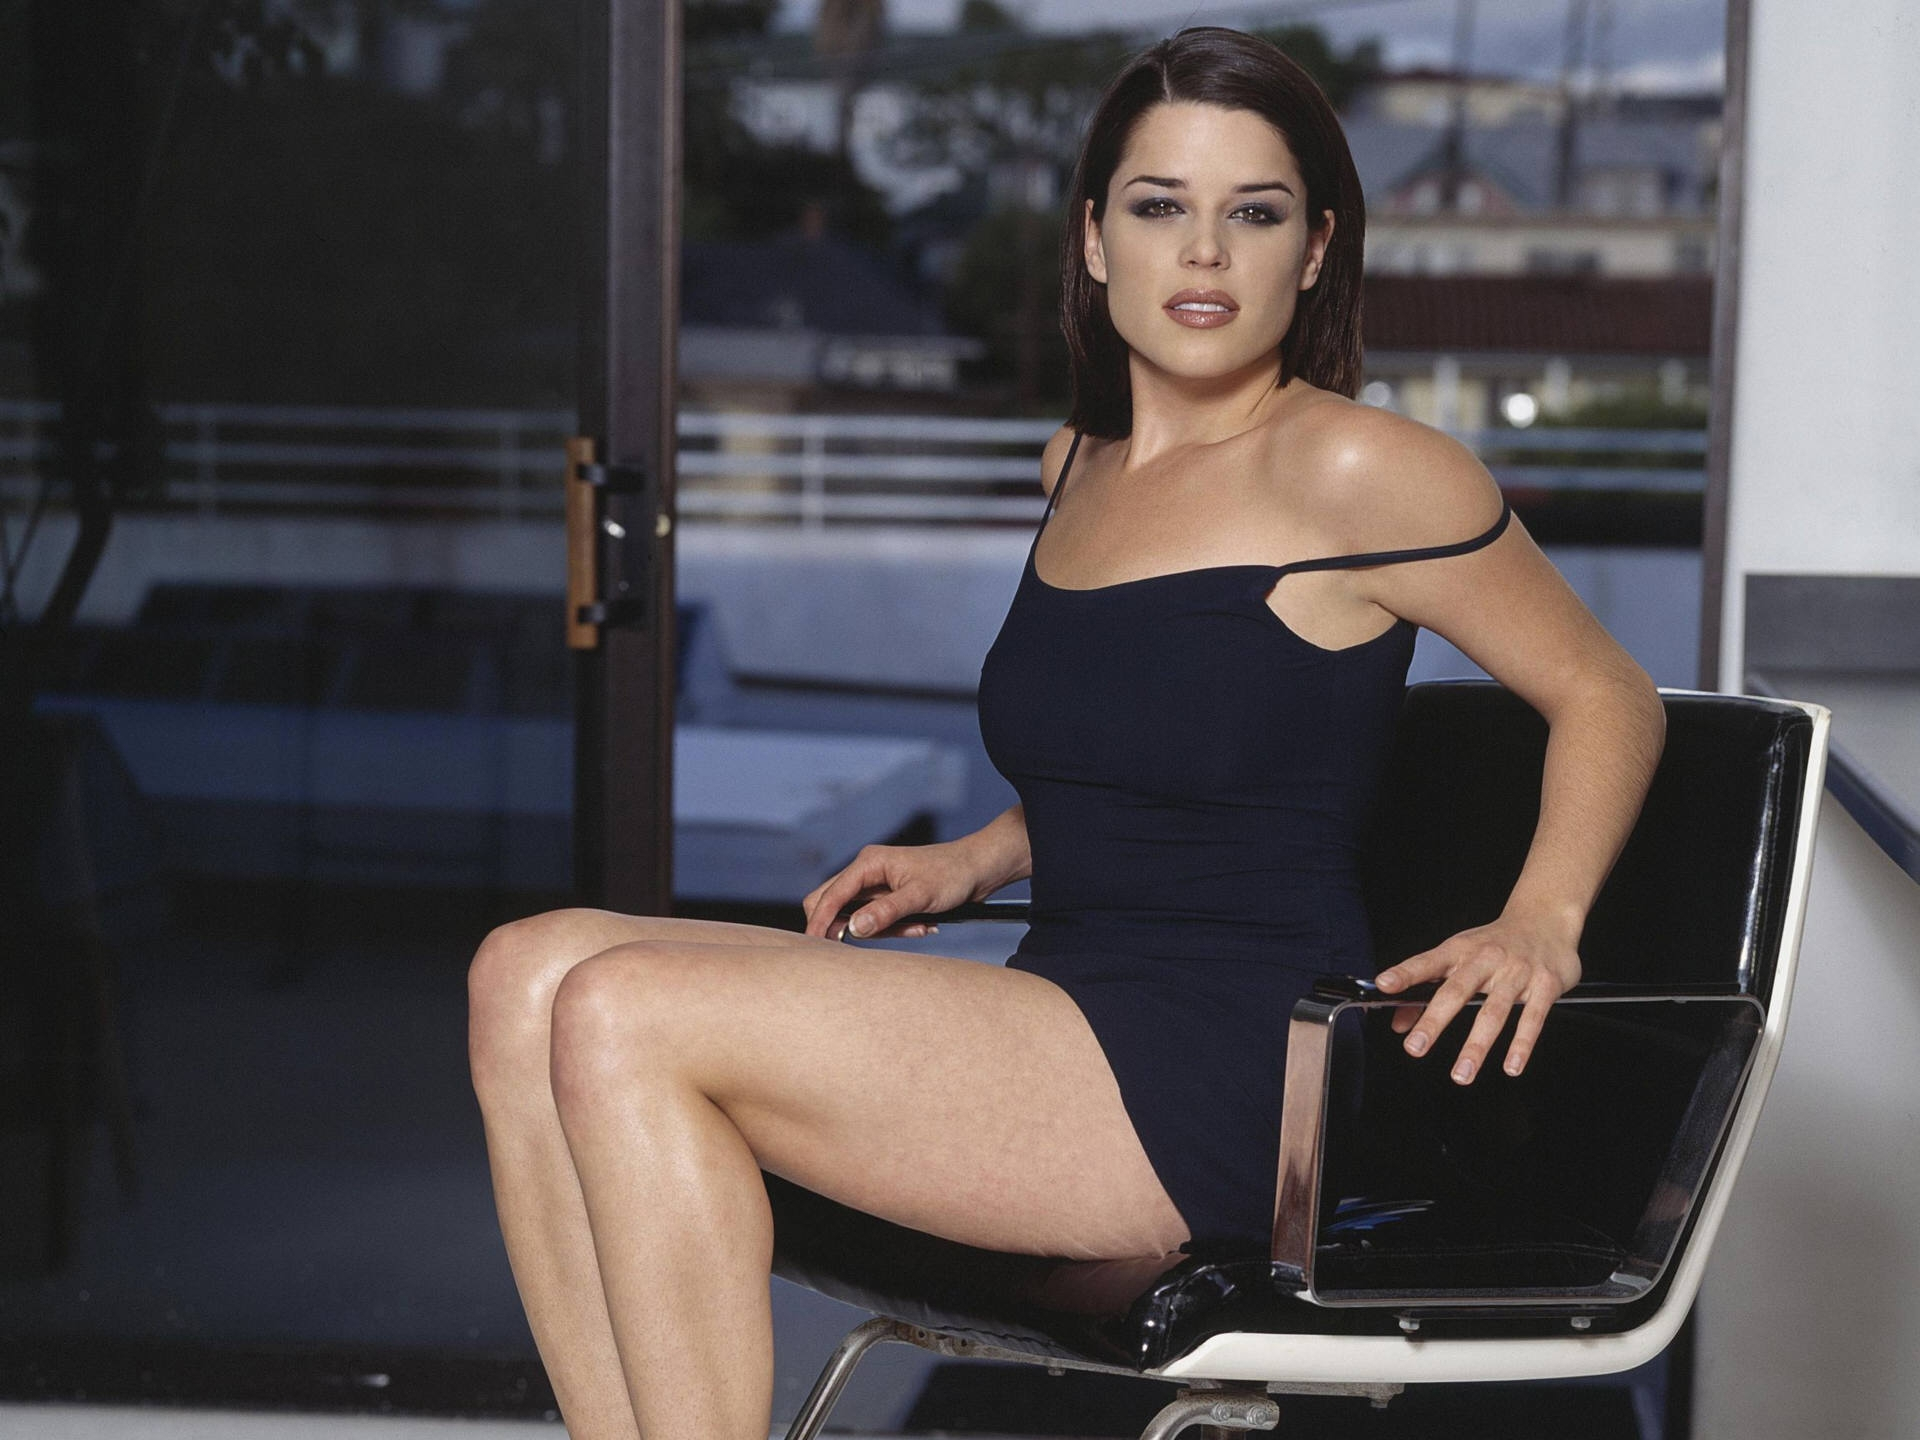 adrianne neve campbell wallpaper - photo #15